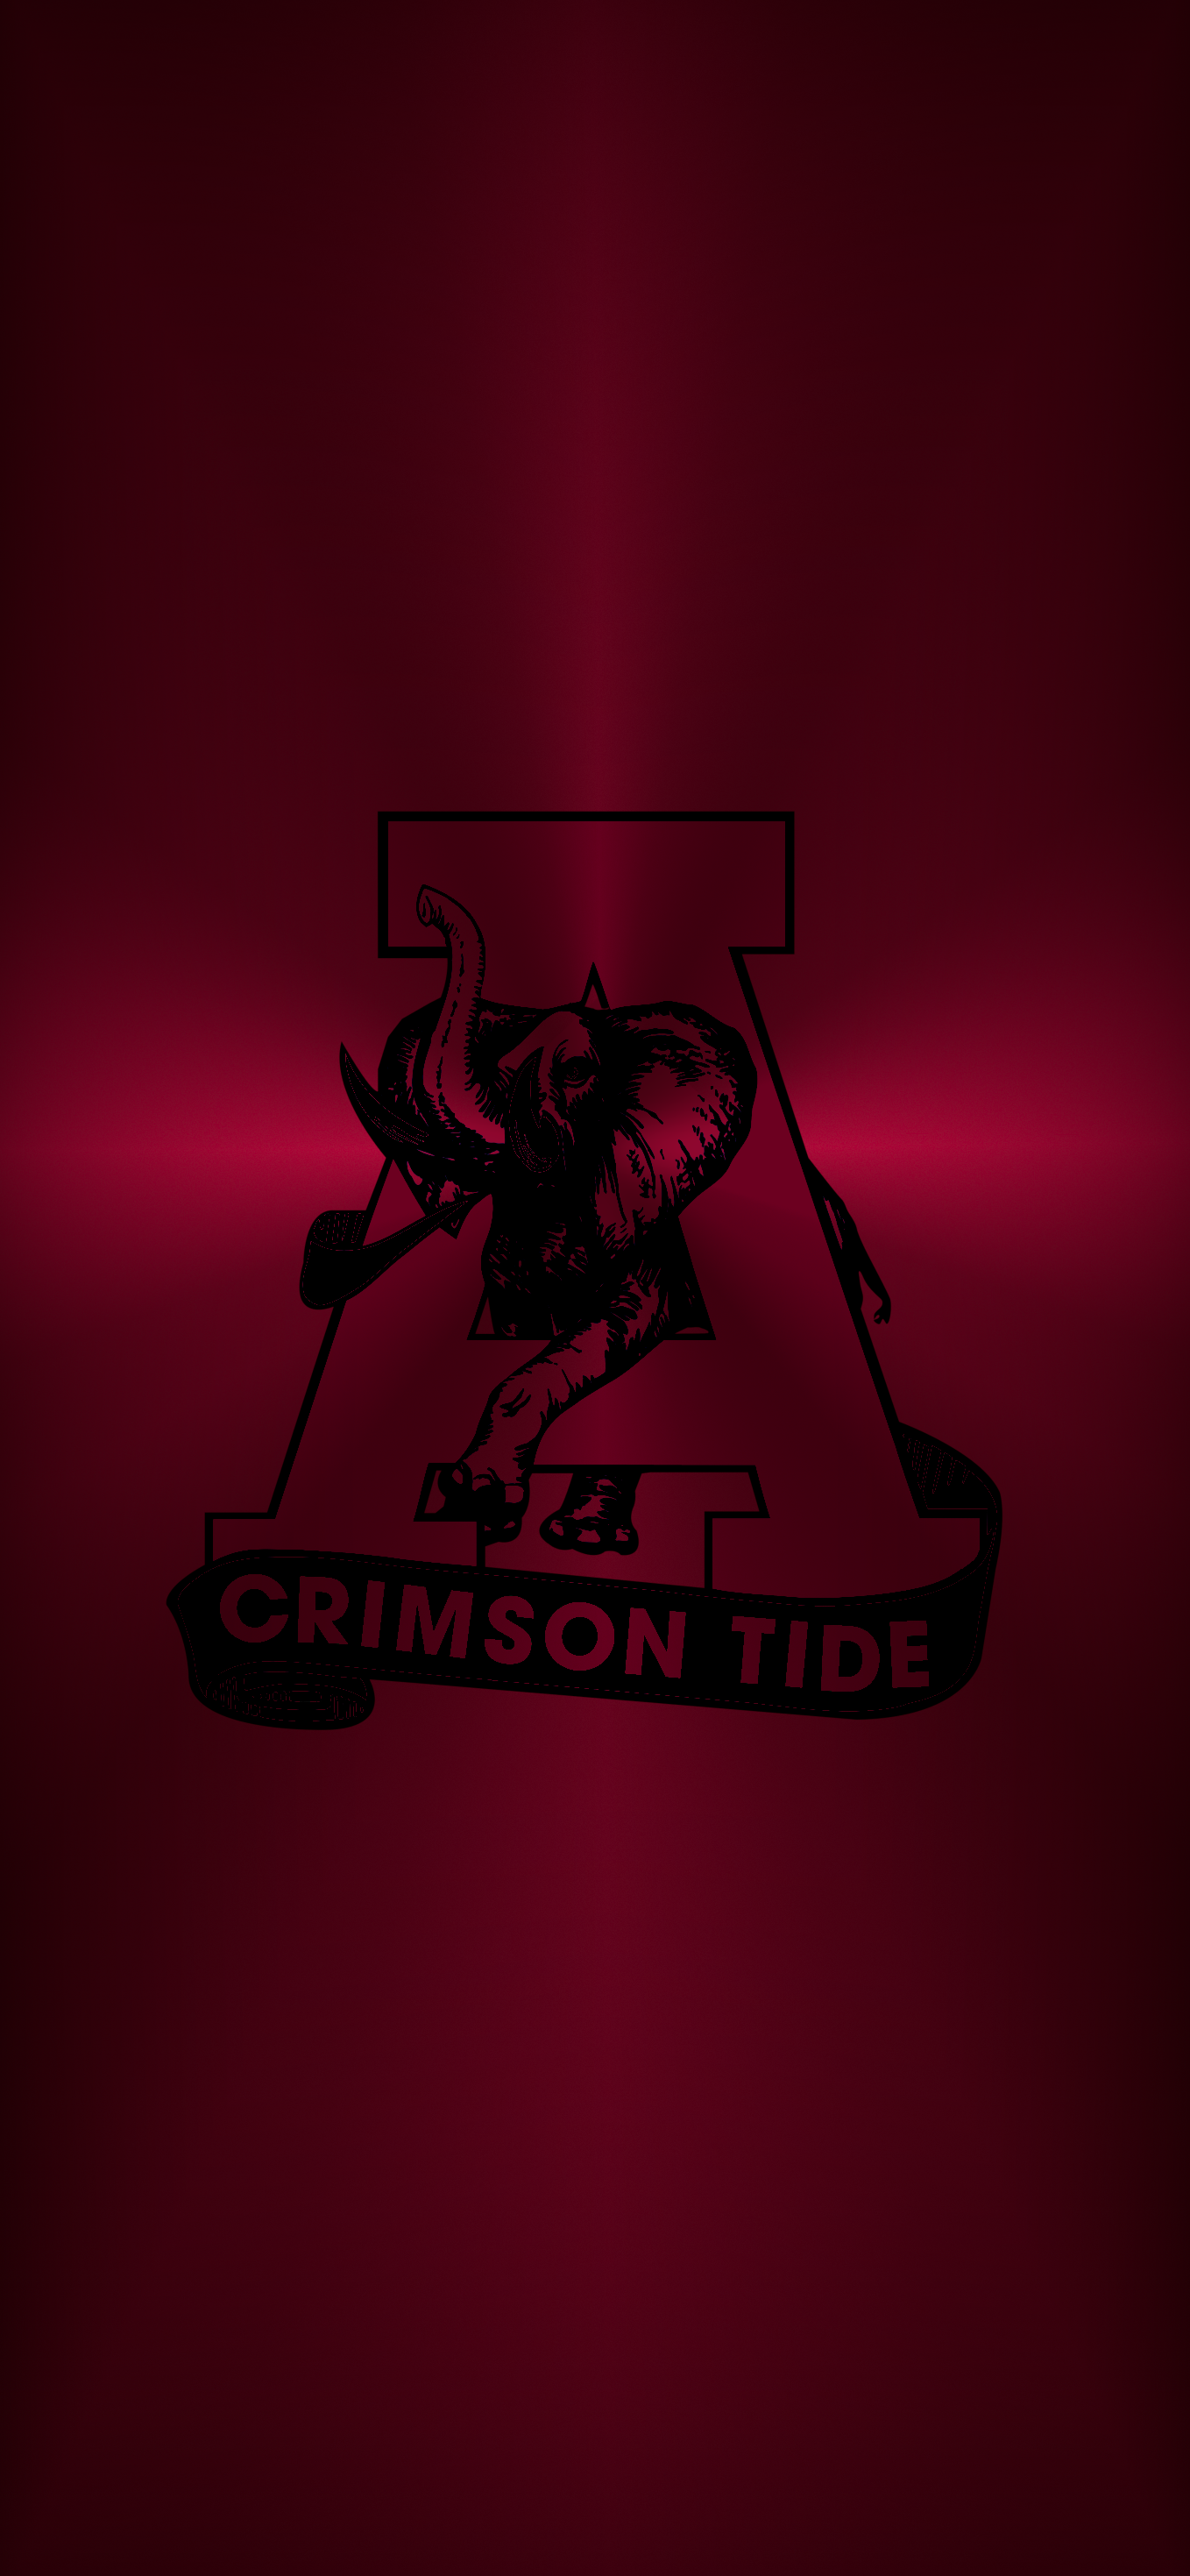 Bama Logo 11 Metal Alabama Crimson Tide Logo Alabama Crimson Tide Football Crimson Tide Football